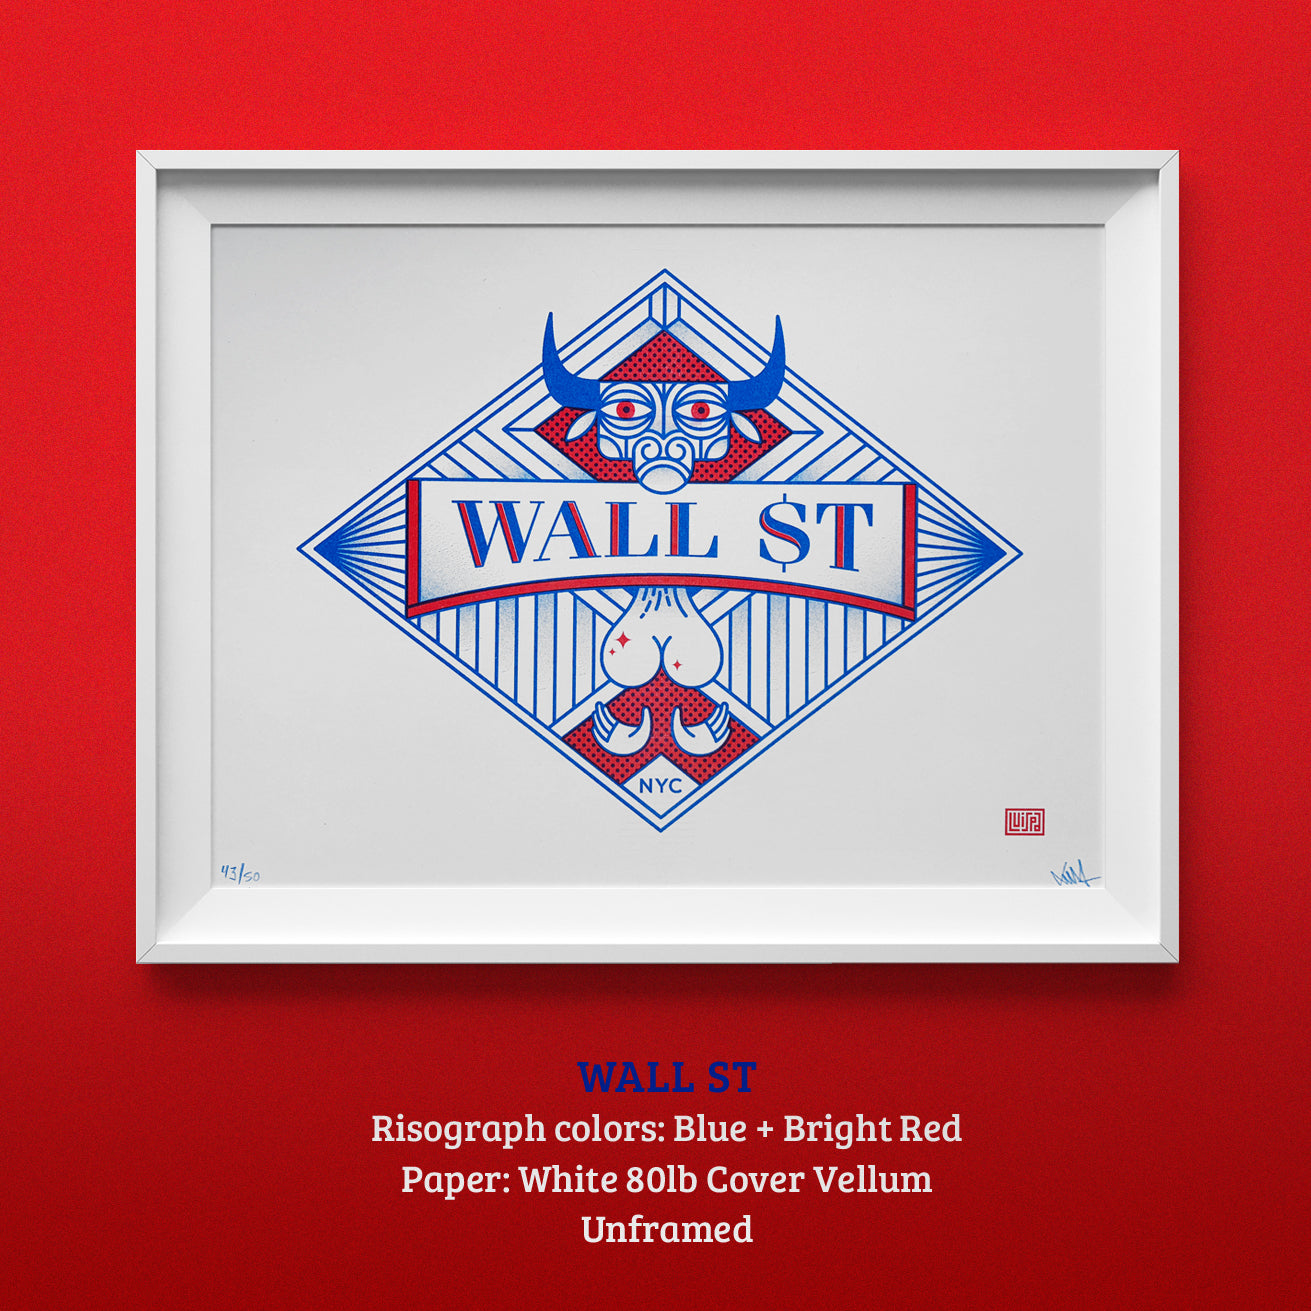 Wall Street Risograph Print by Lulab